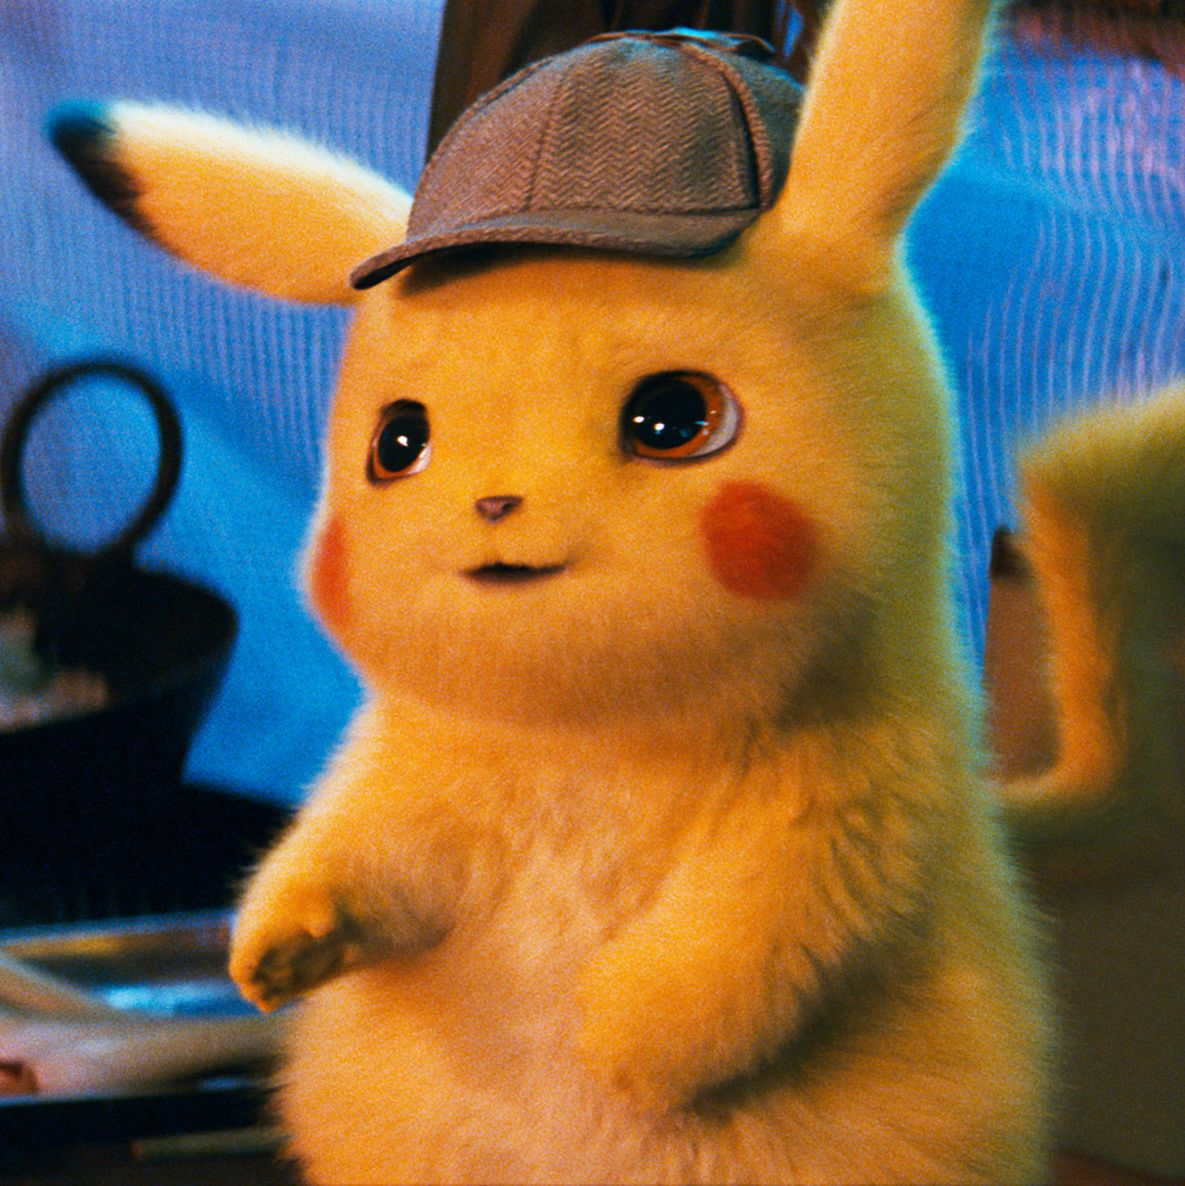 Detective Pikachu director reveals he had to wait two years to be allowed to use one particular Pokémon